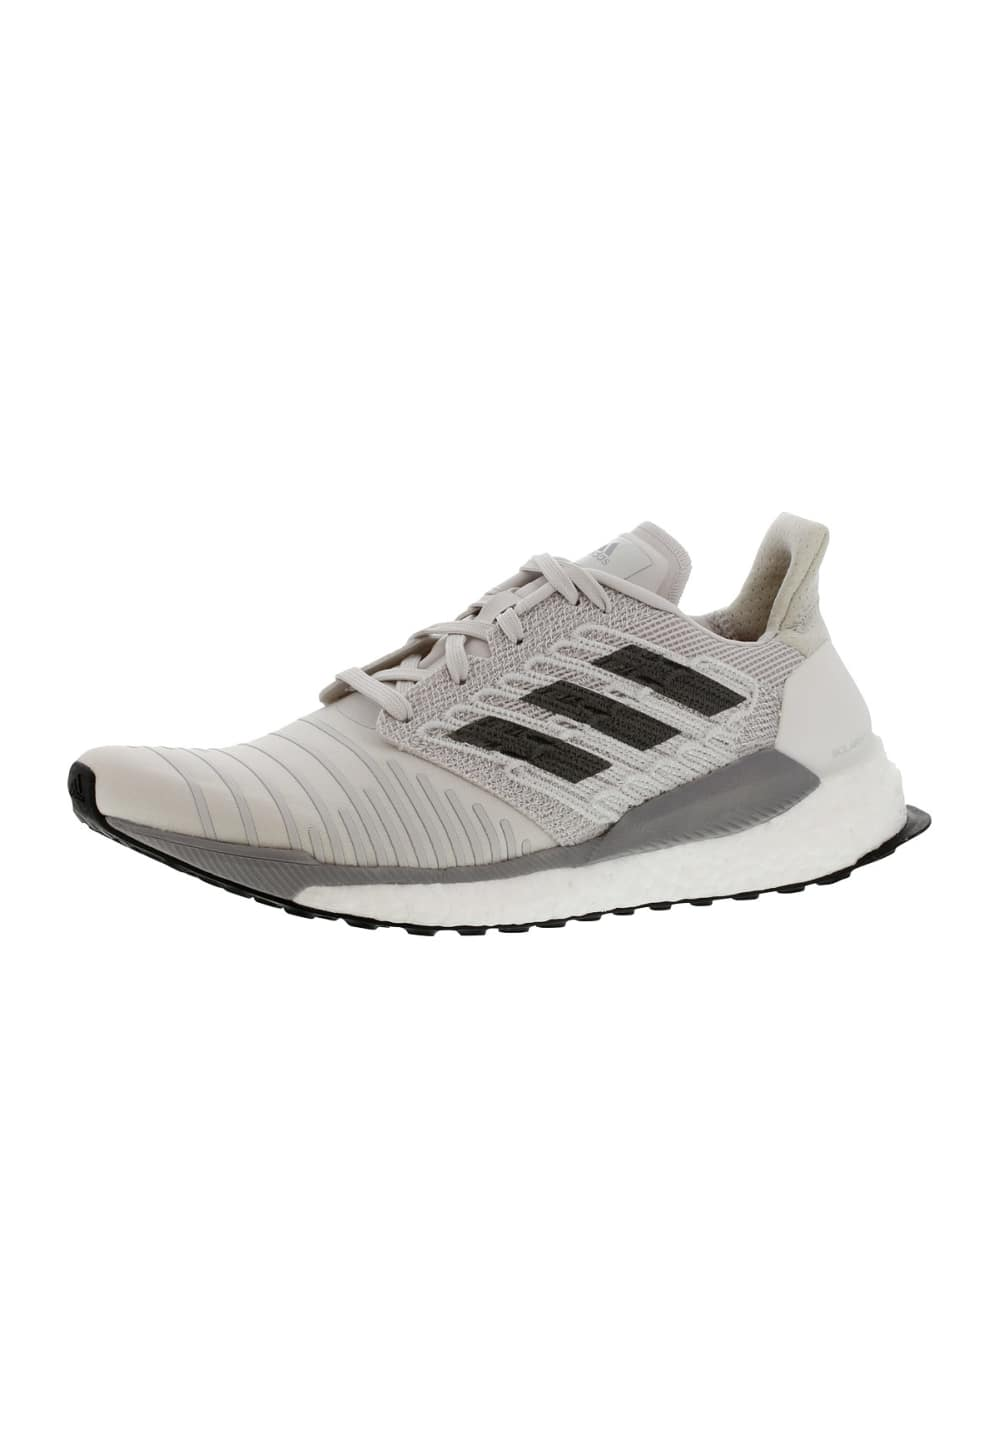 ... adidas Solar Boost - Running shoes for Women - Grey. Back to Overview.  1  2  3  4  5. Previous 98c07f6ed